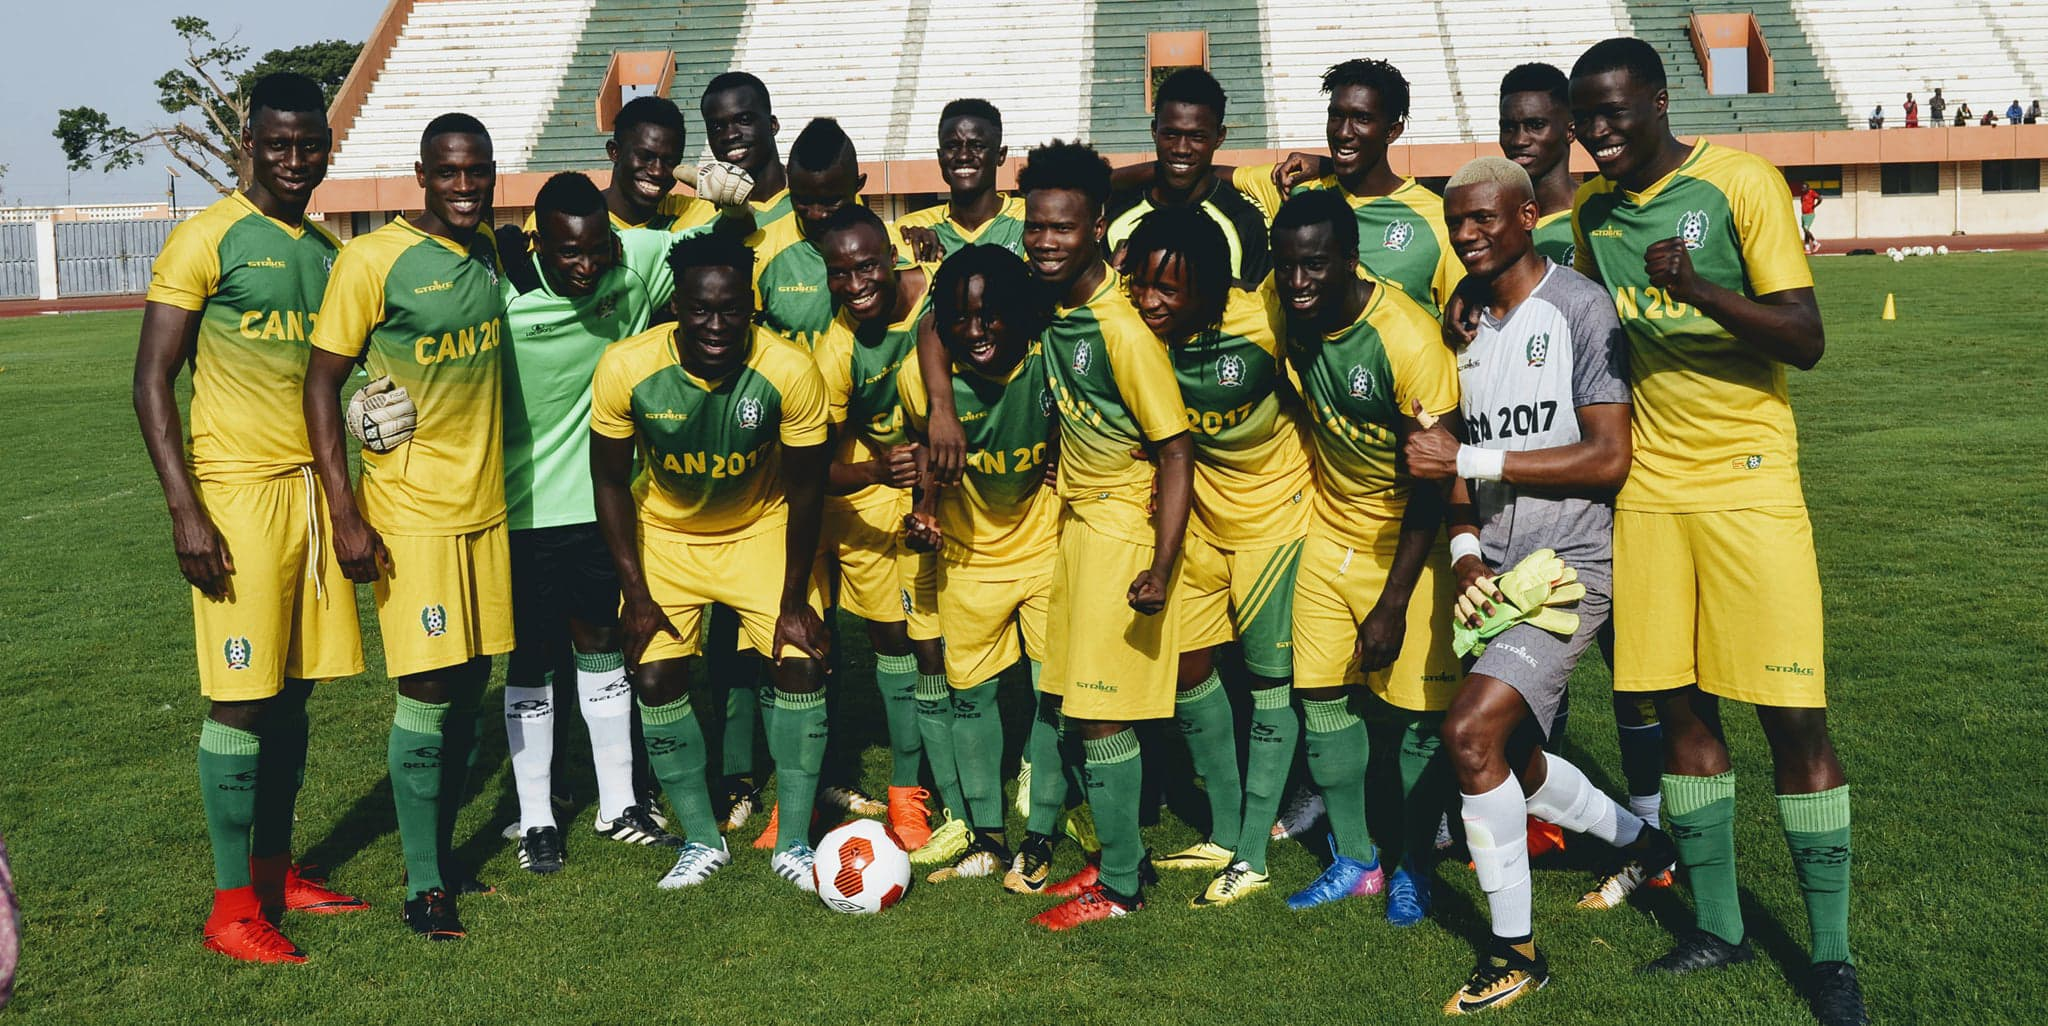 U20 qualifiers: Guinea Bissau line-up 15 foreign-based for Sierra Leone